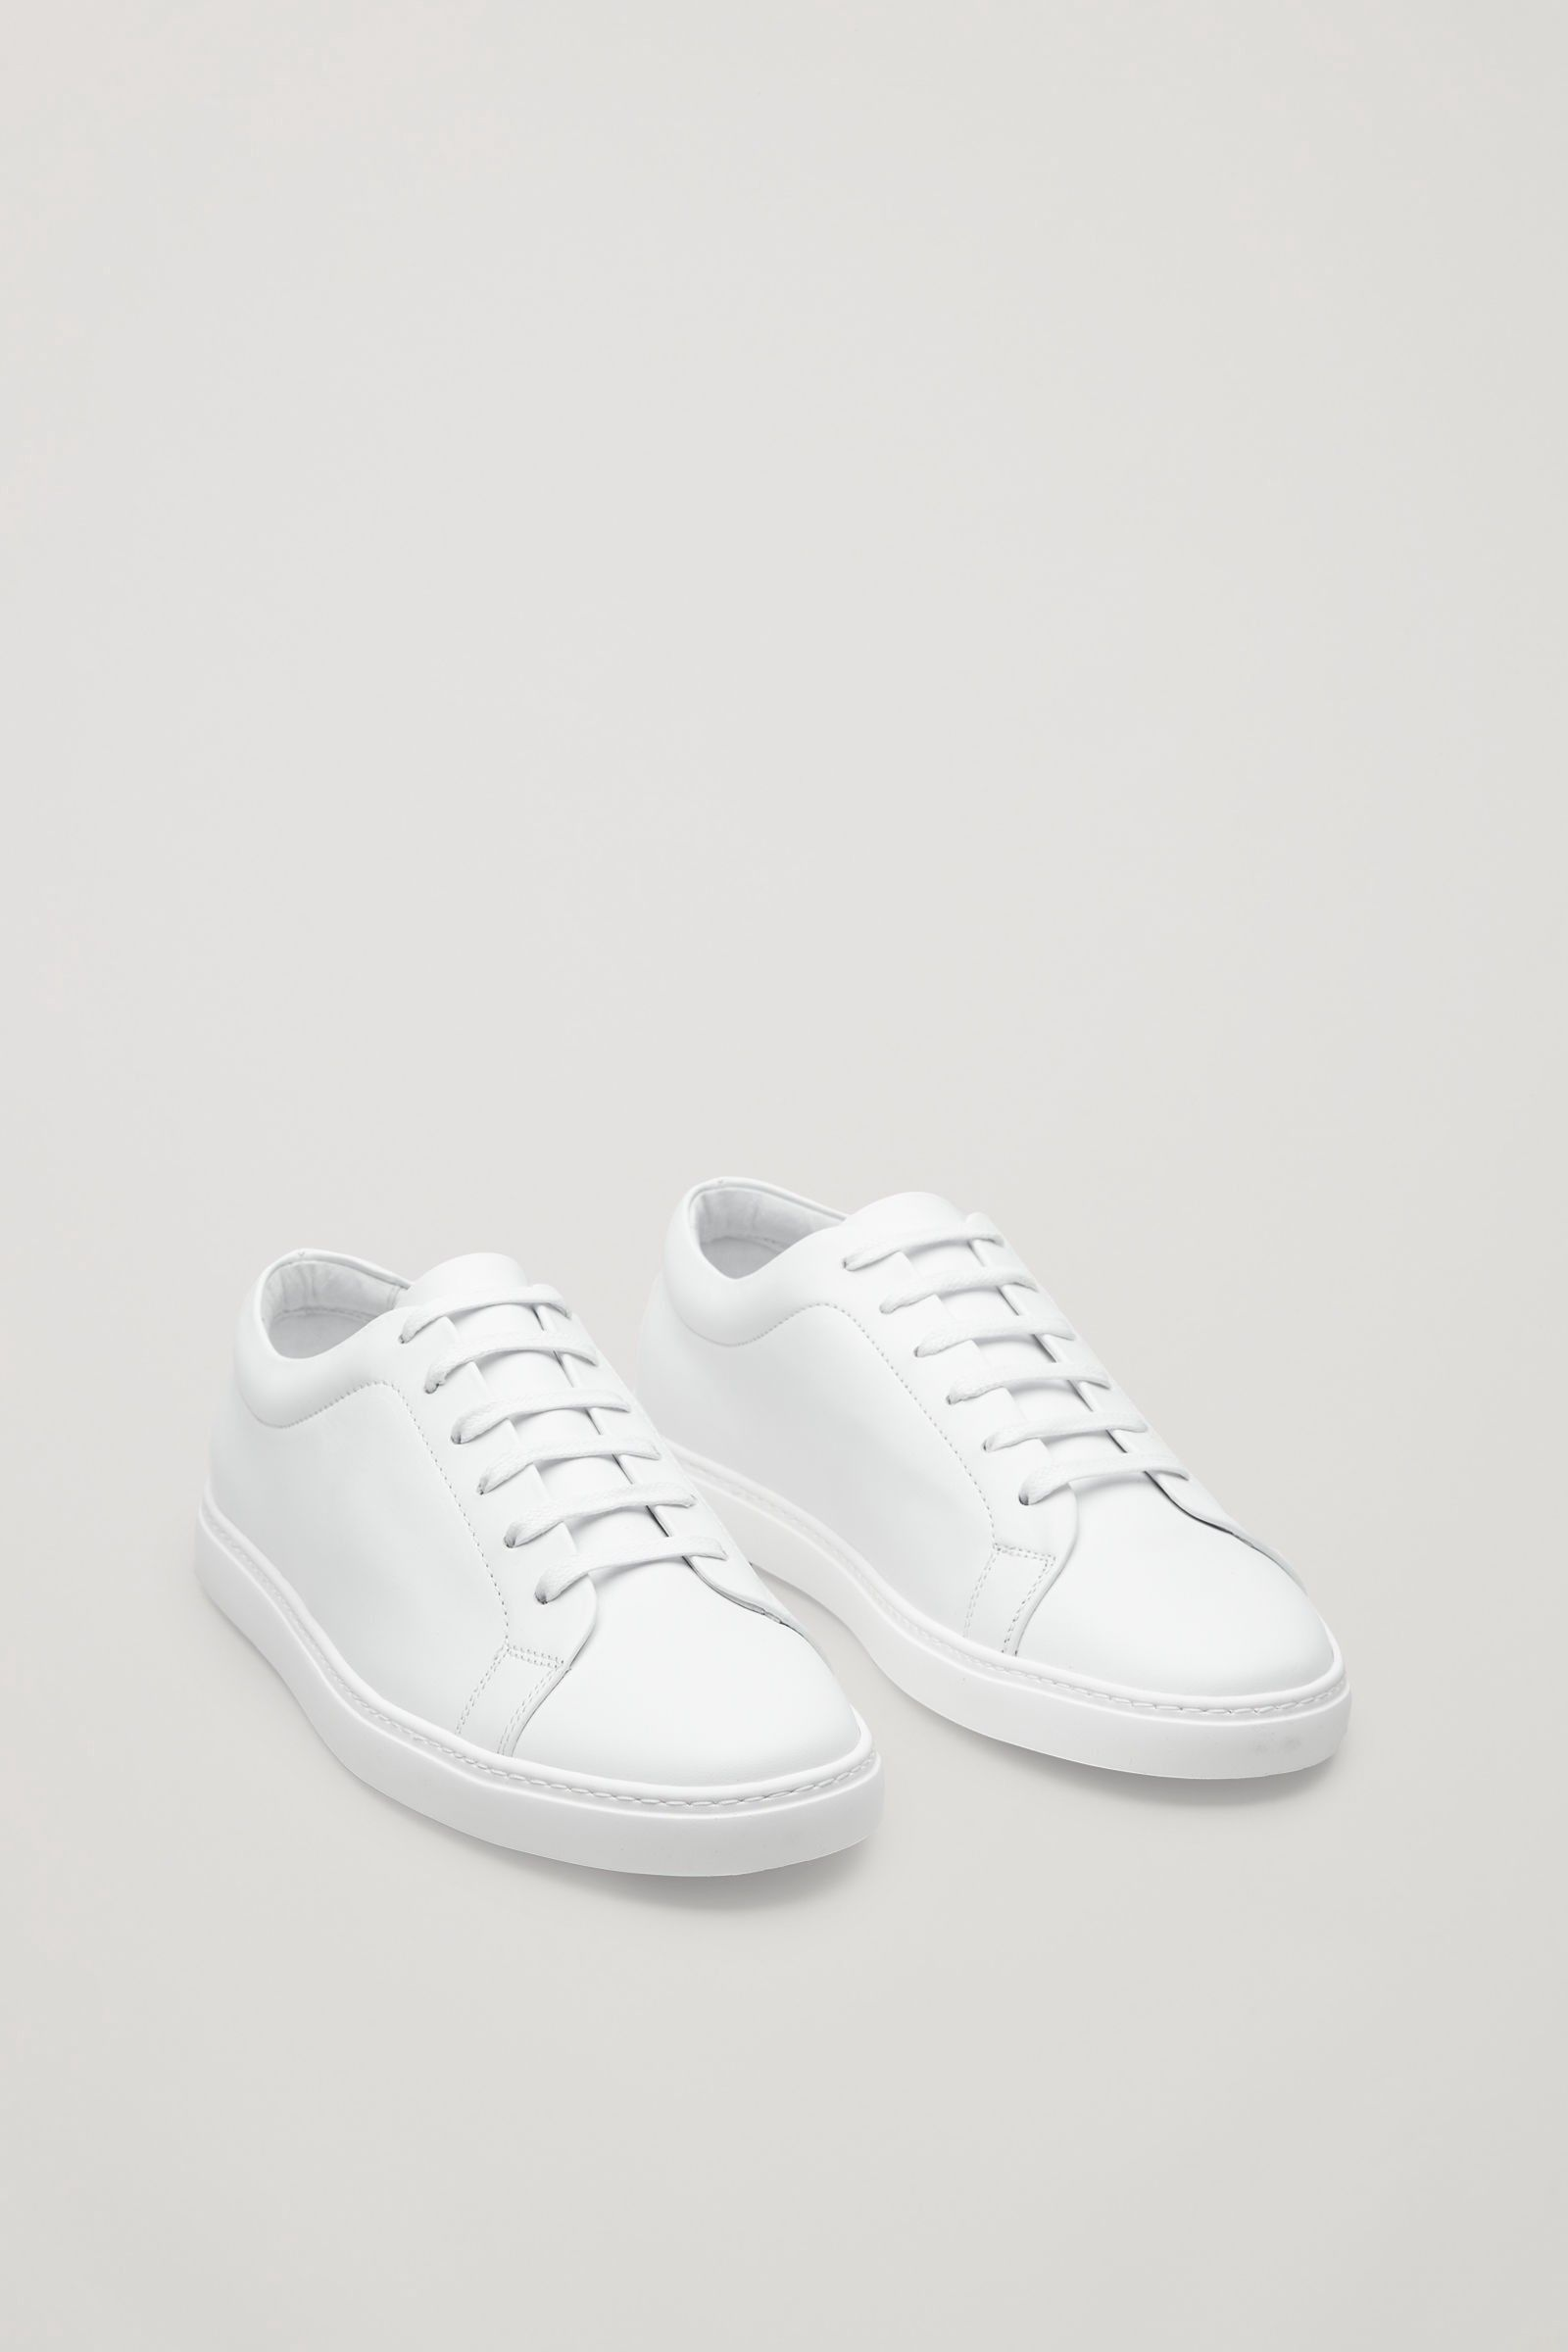 9c3b1712b6b9 Slim-sole lace-up sneakers - white(OUT OF STOCK) by COS